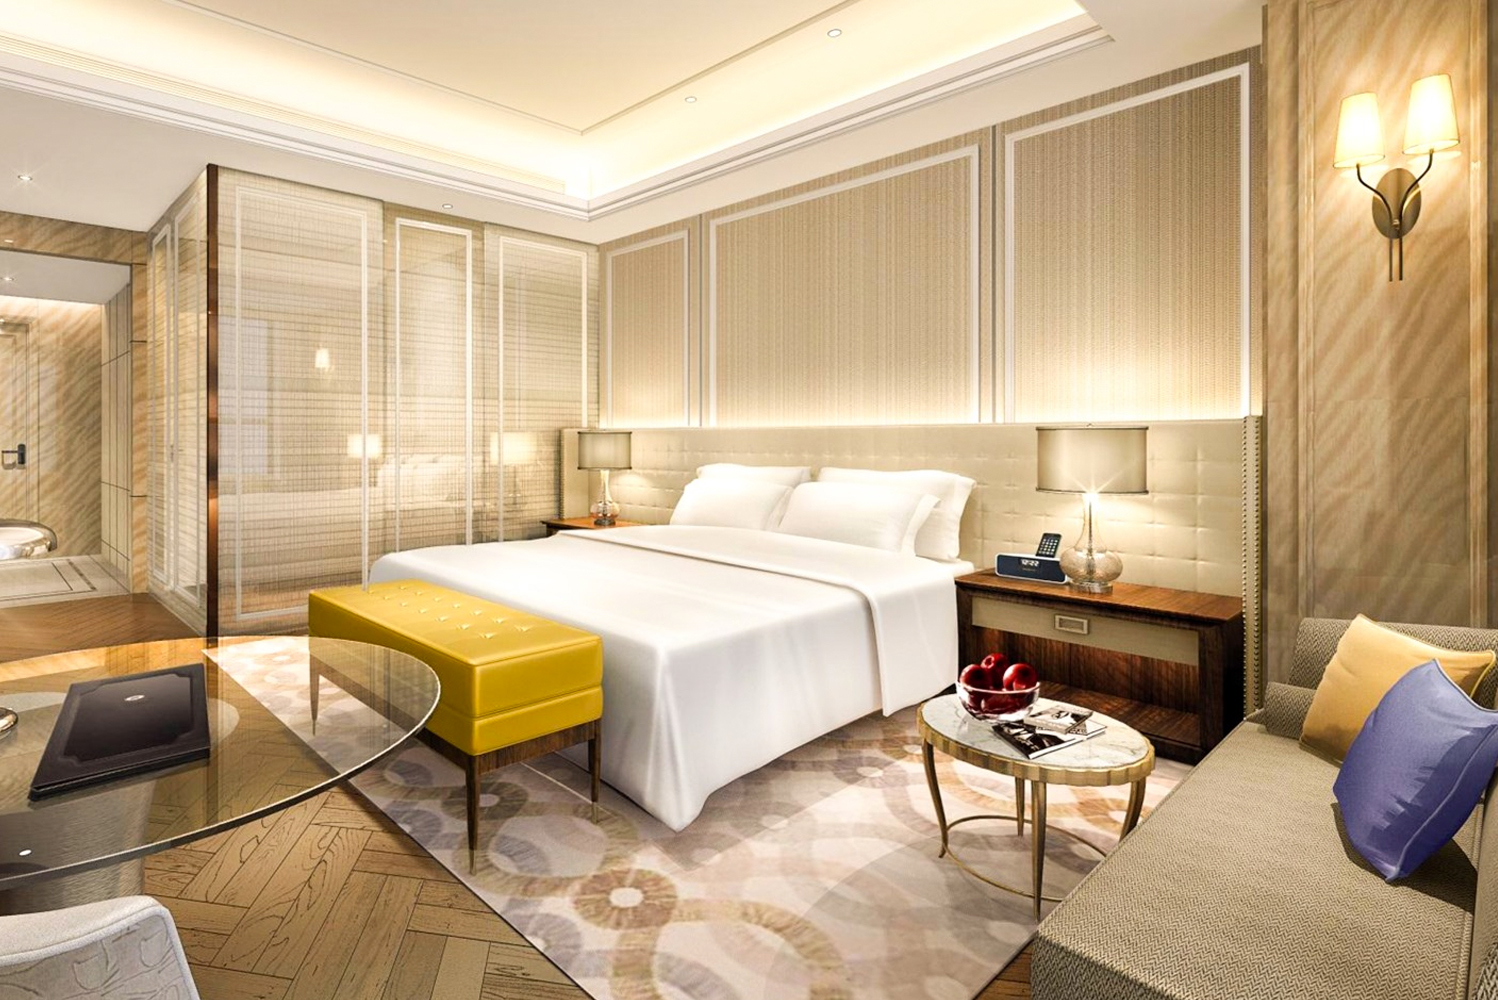 Located in the city's new administration and cultural center, The Langham, Hefei is in the heart of the business, shopping and entertainment districts.